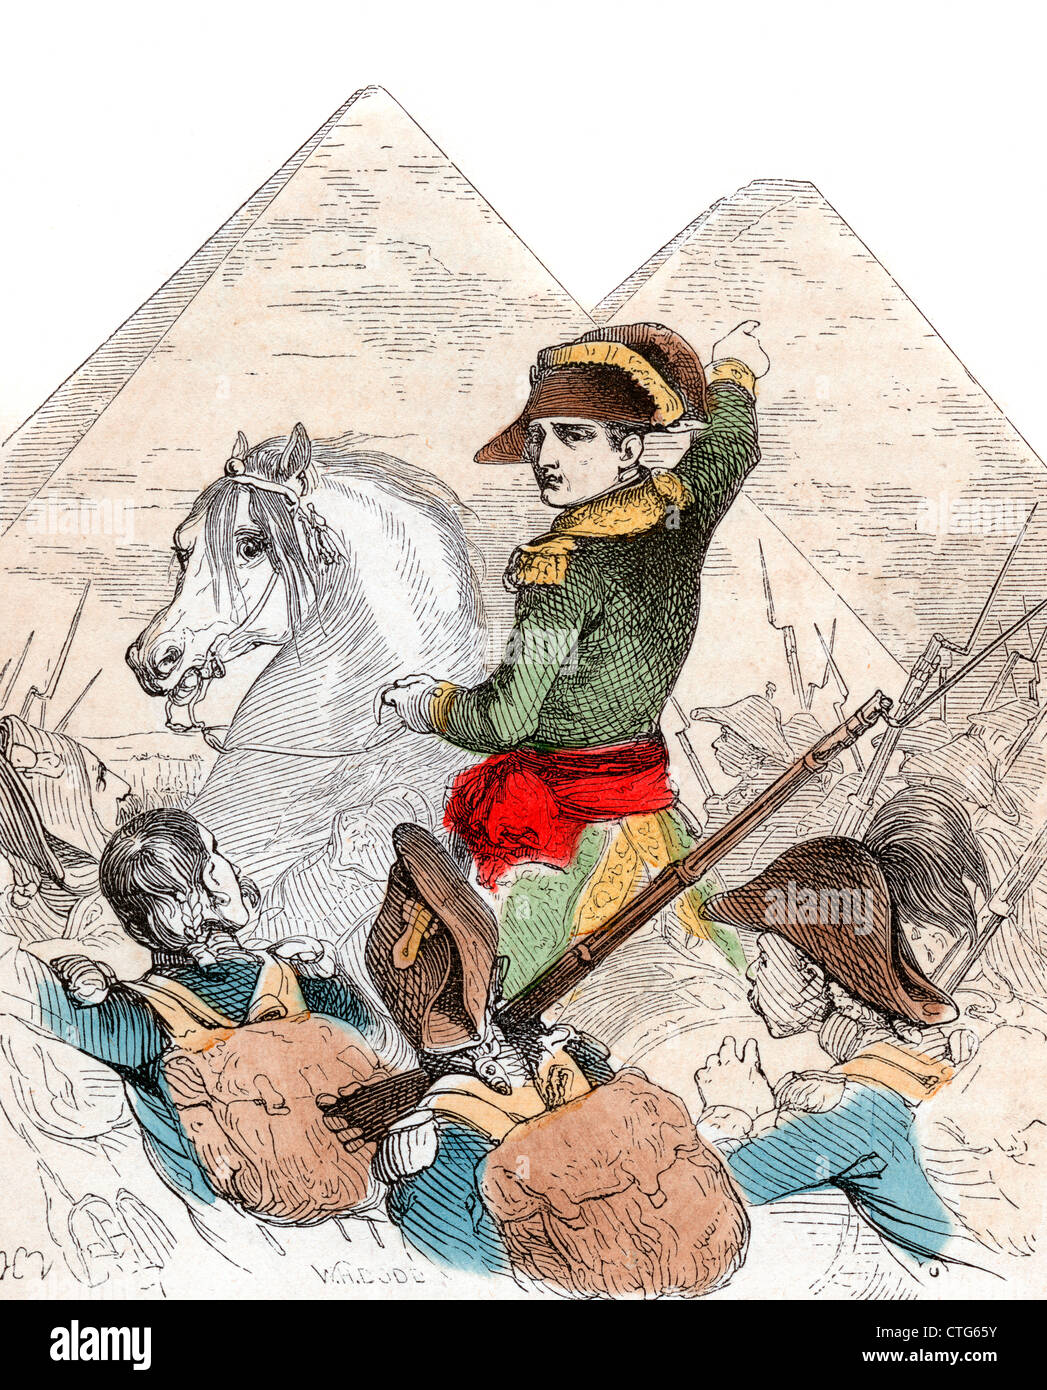 napoleon bonaparte a military leader in the 1700s history essay Napoleon's reign essay examples  he has been portrayed as a merciless leader,  the significance of napoleon bonaparte in the history of france and europe.